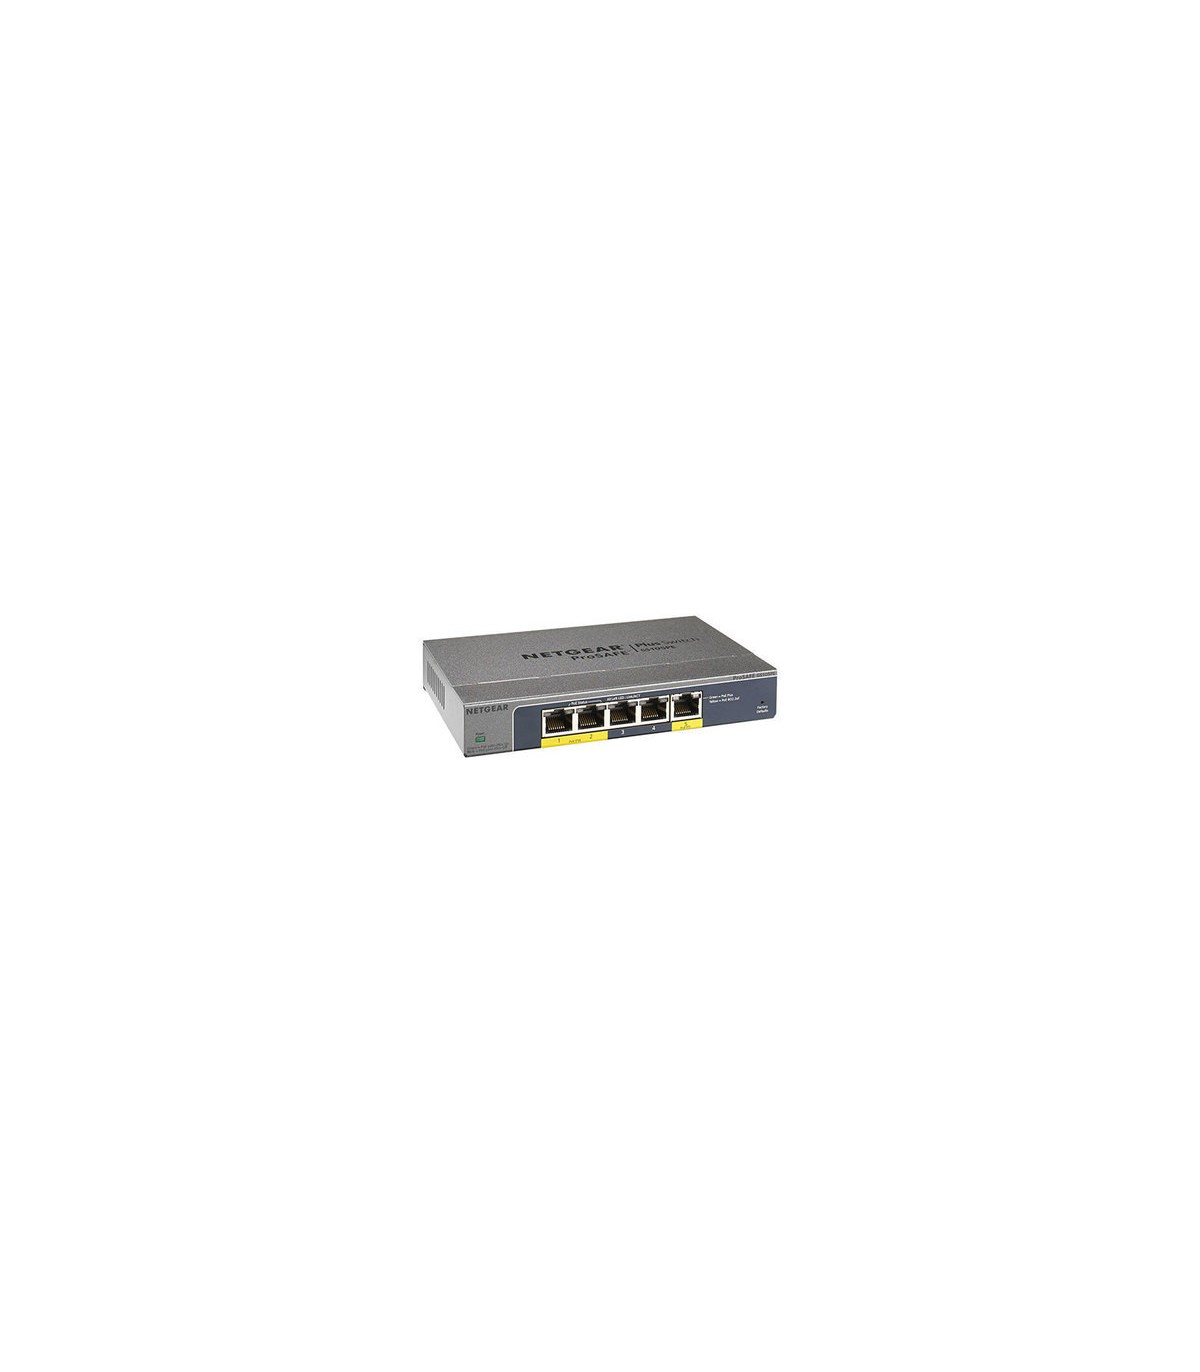 Hub switch 5ptos 10/100/1000 vlan qos netgear